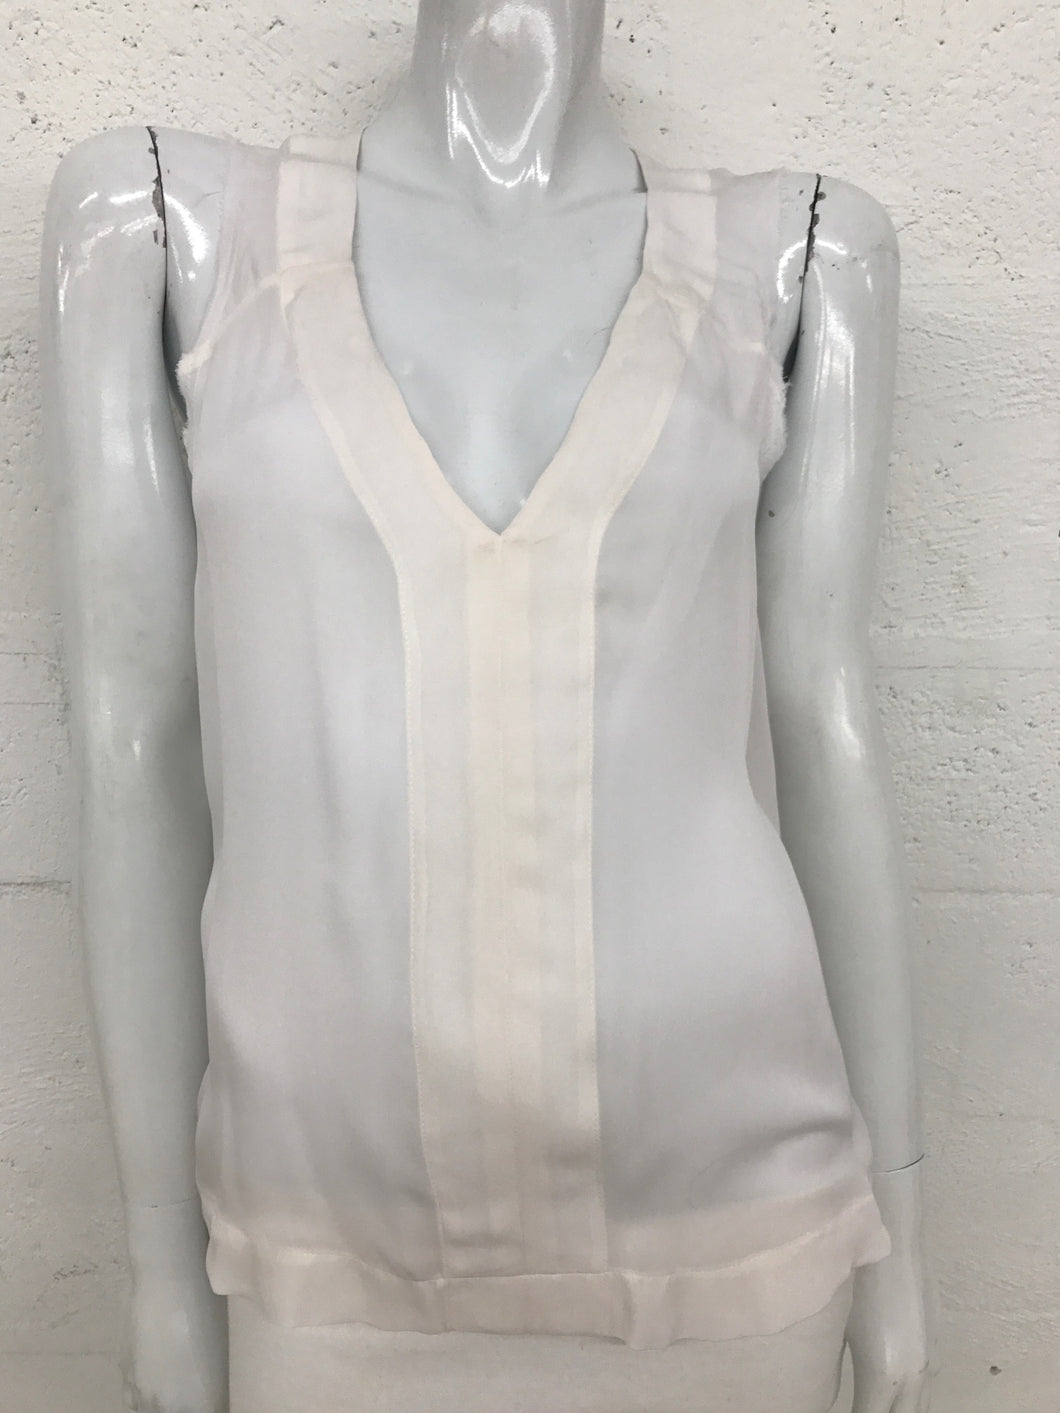 A.L.C white sleeveless blouse